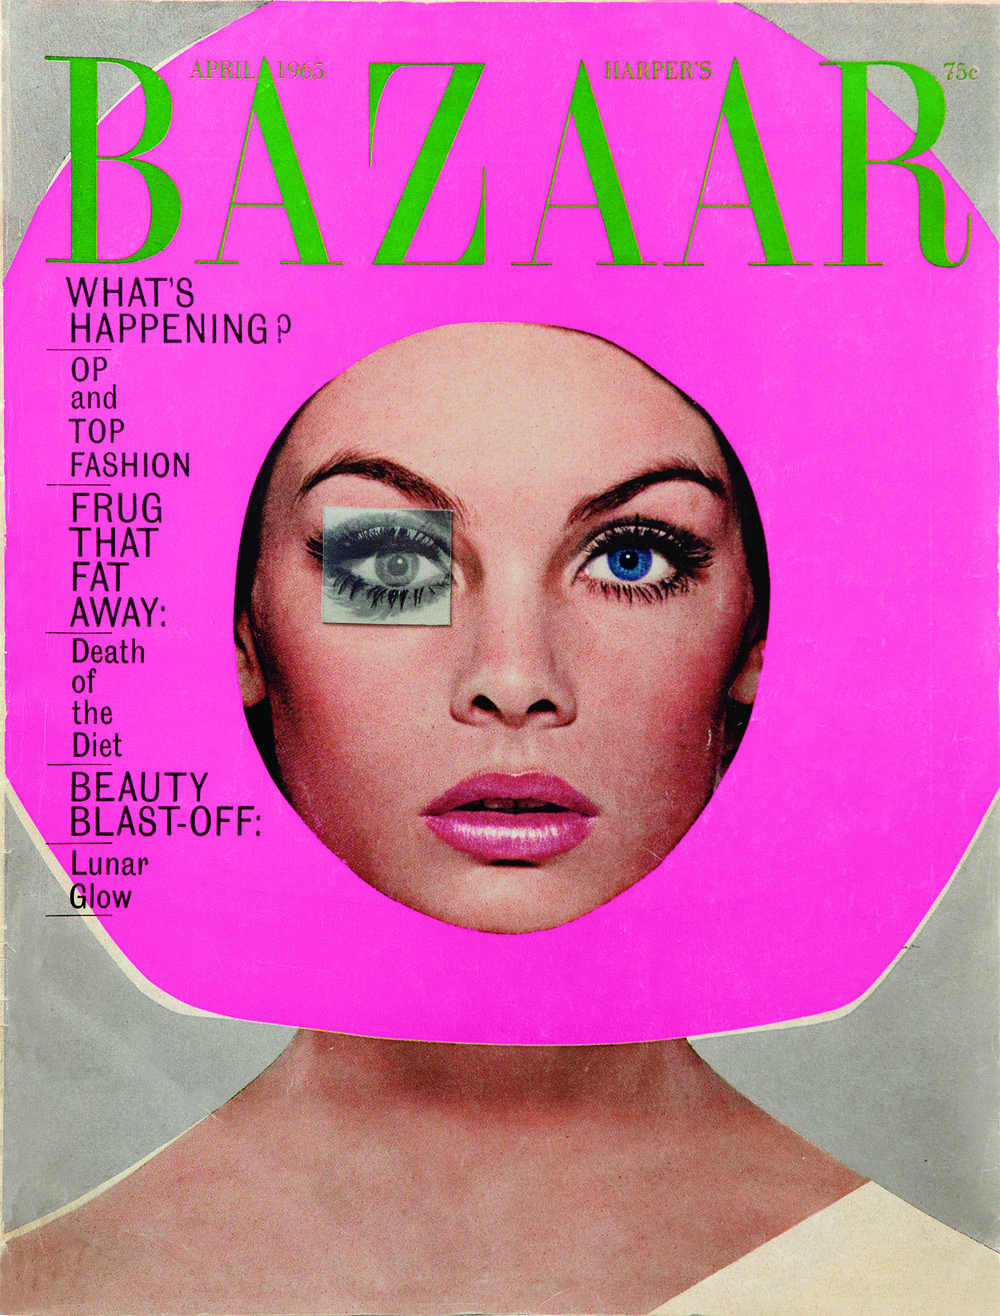 Bea Feitler art direction for Harper's Bazaar